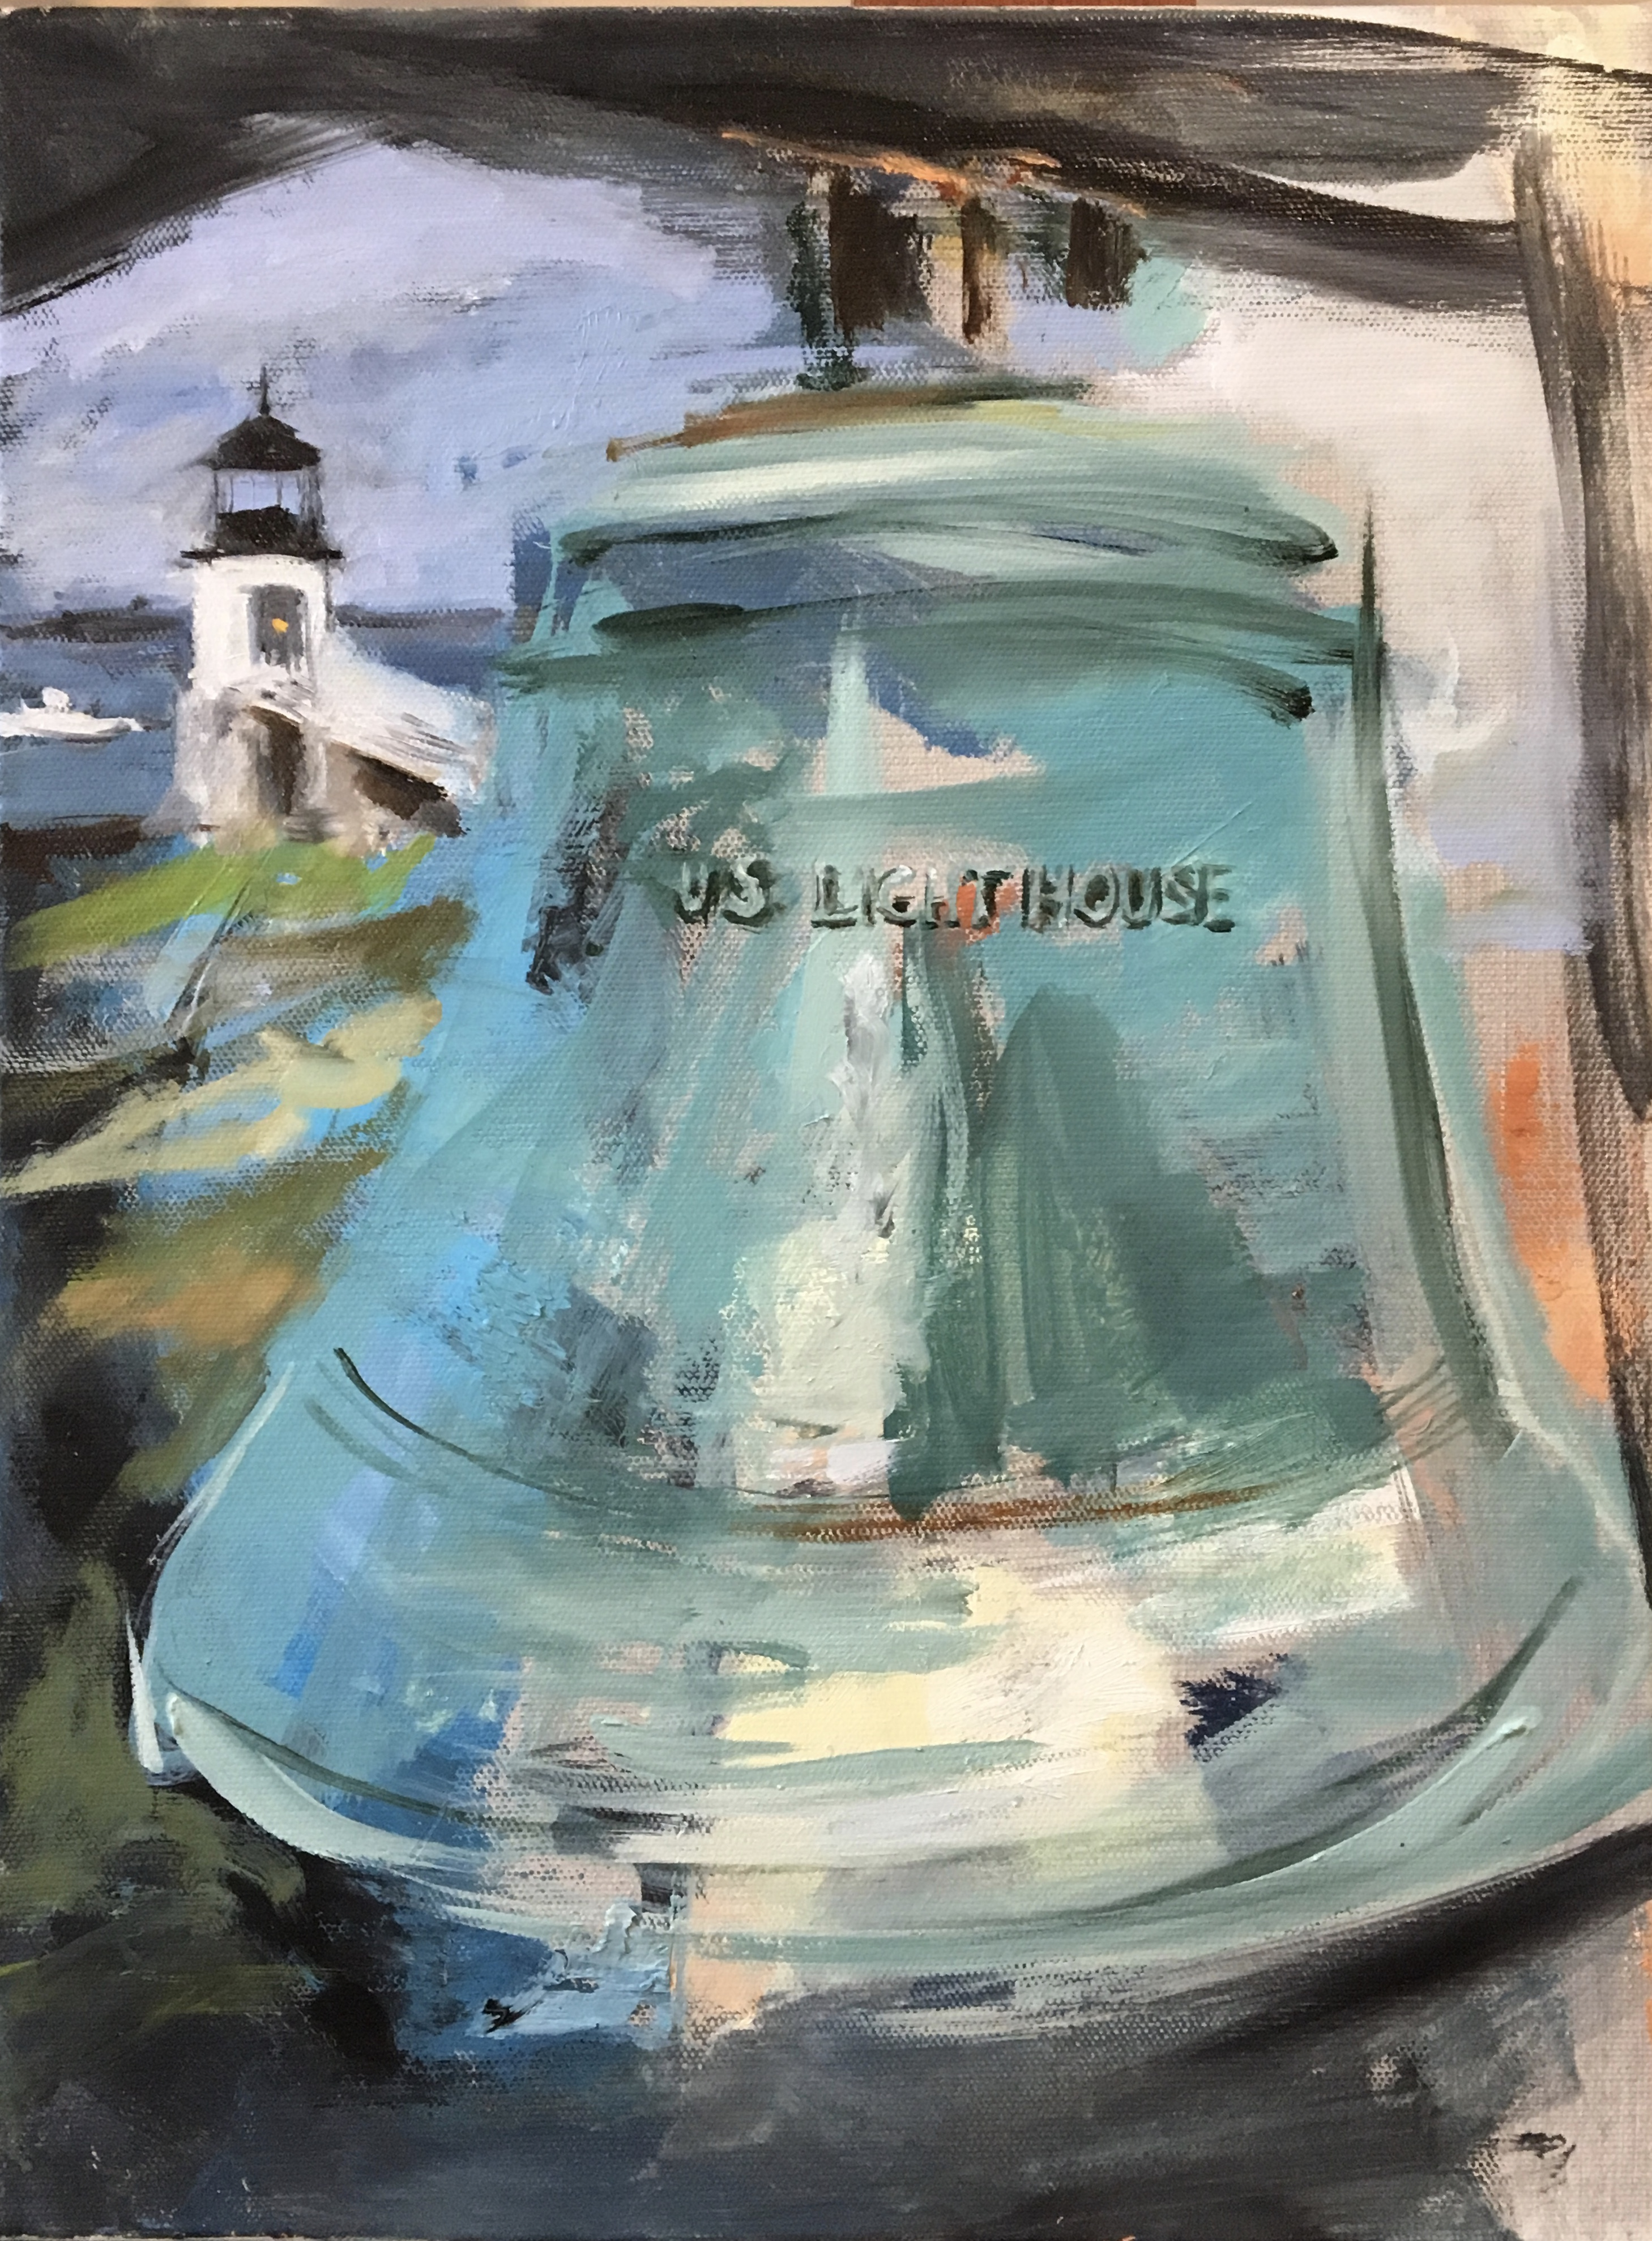 "Marshall Pt., U.S. Lighthouse,16""x12"", Private Collection, Massachusetts"